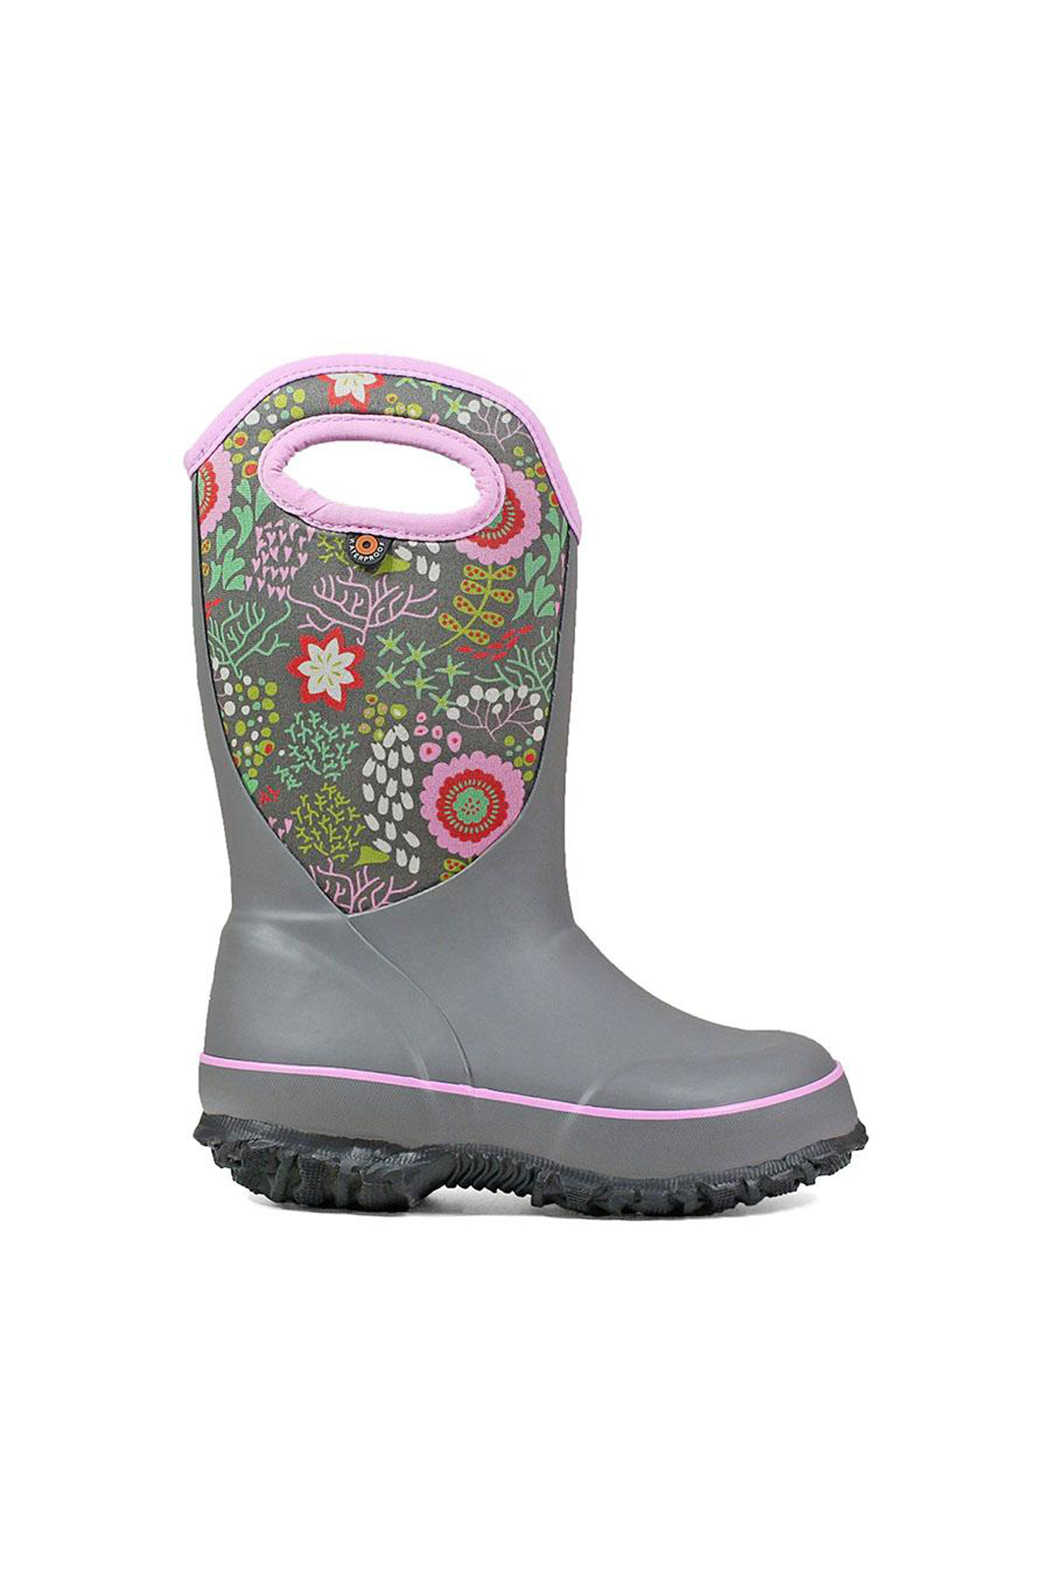 BOGS Classic Slushie Reef Kids Insulated Boots - Main Image